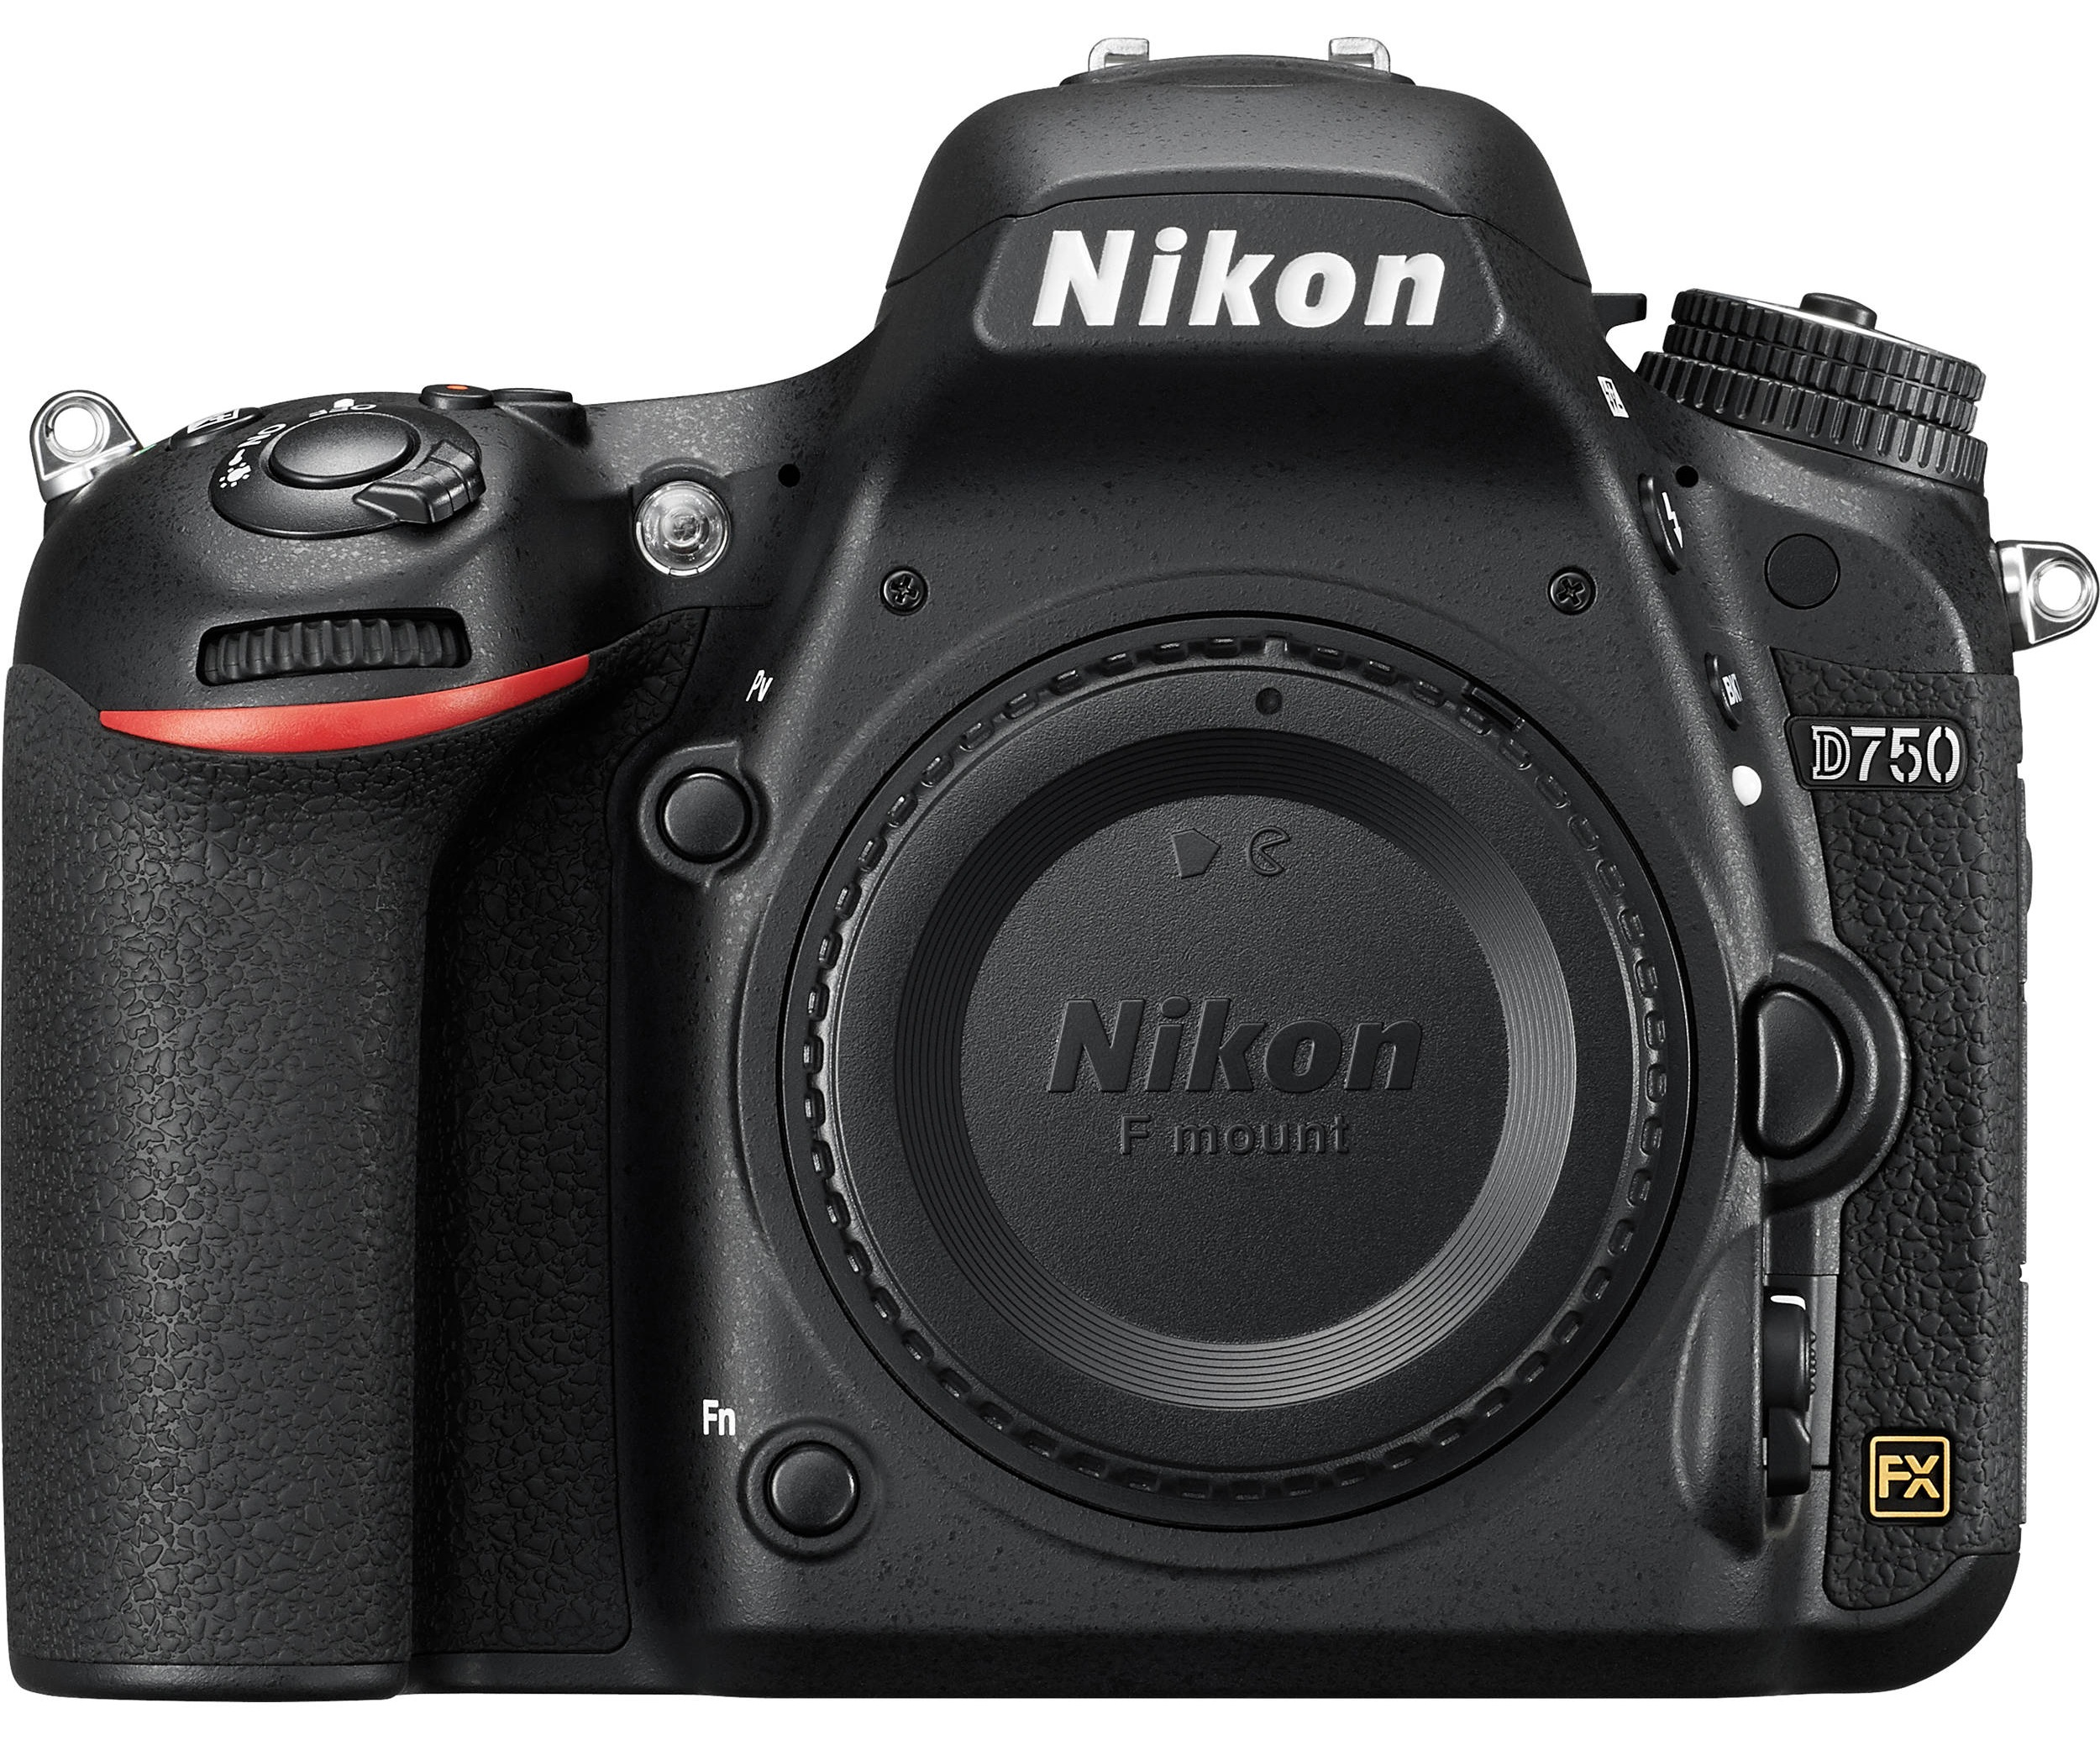 Nikon D750 camera - the camera I use for food photography and filming videos - i love this camera